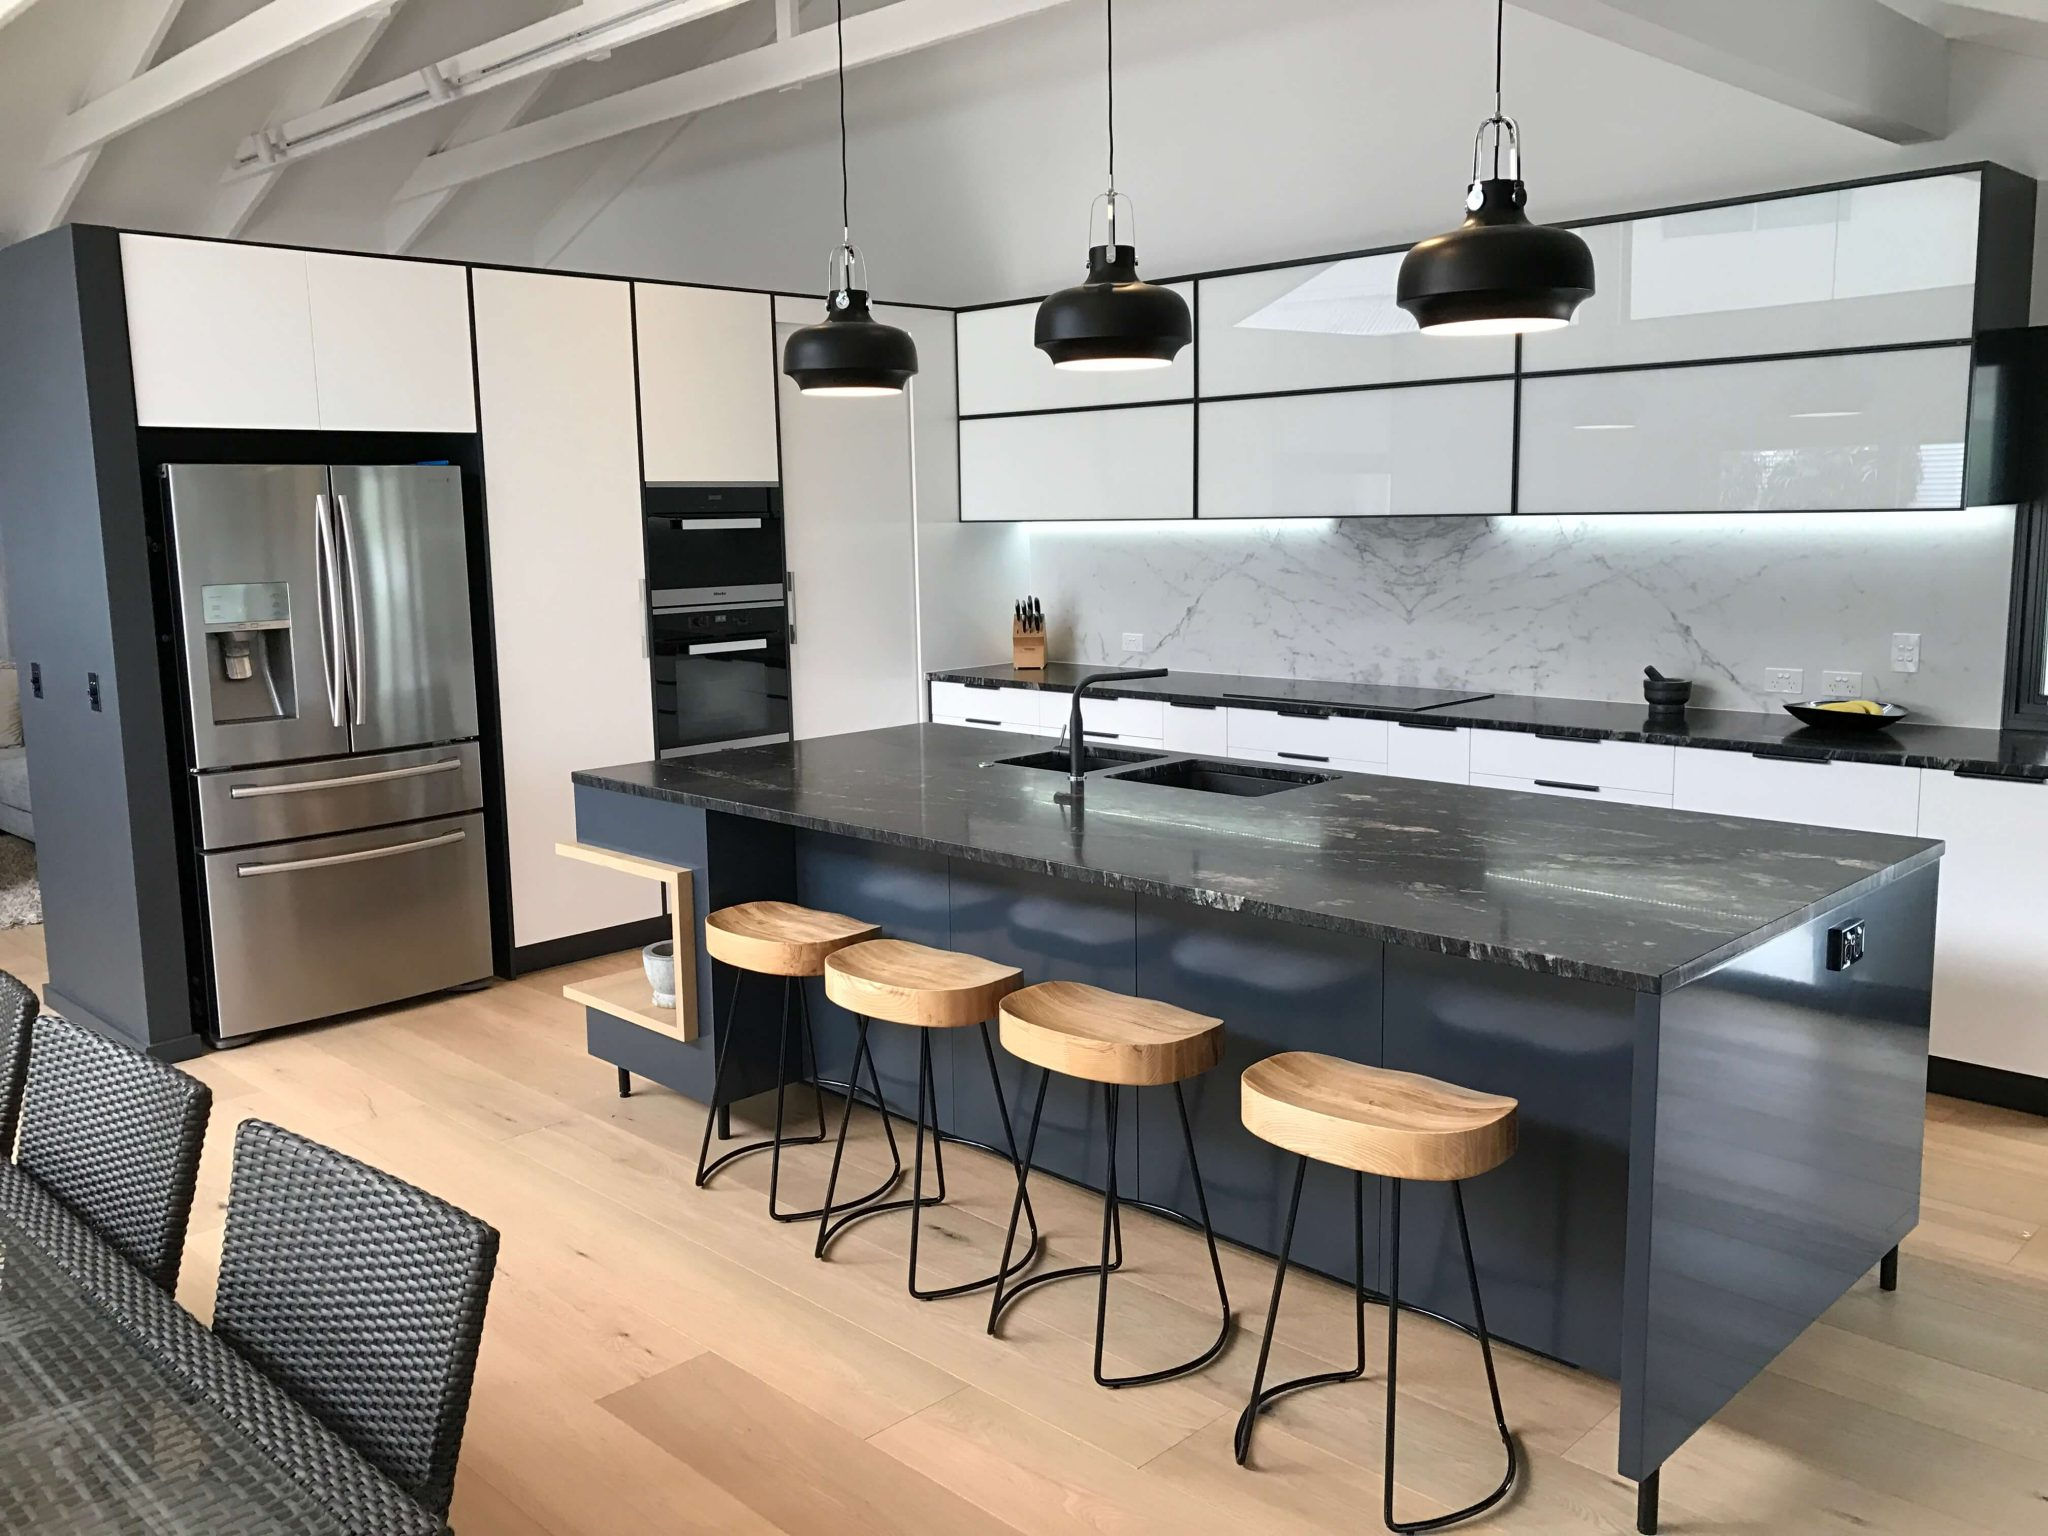 What Is The Most Efficient Design For A Kitchen?